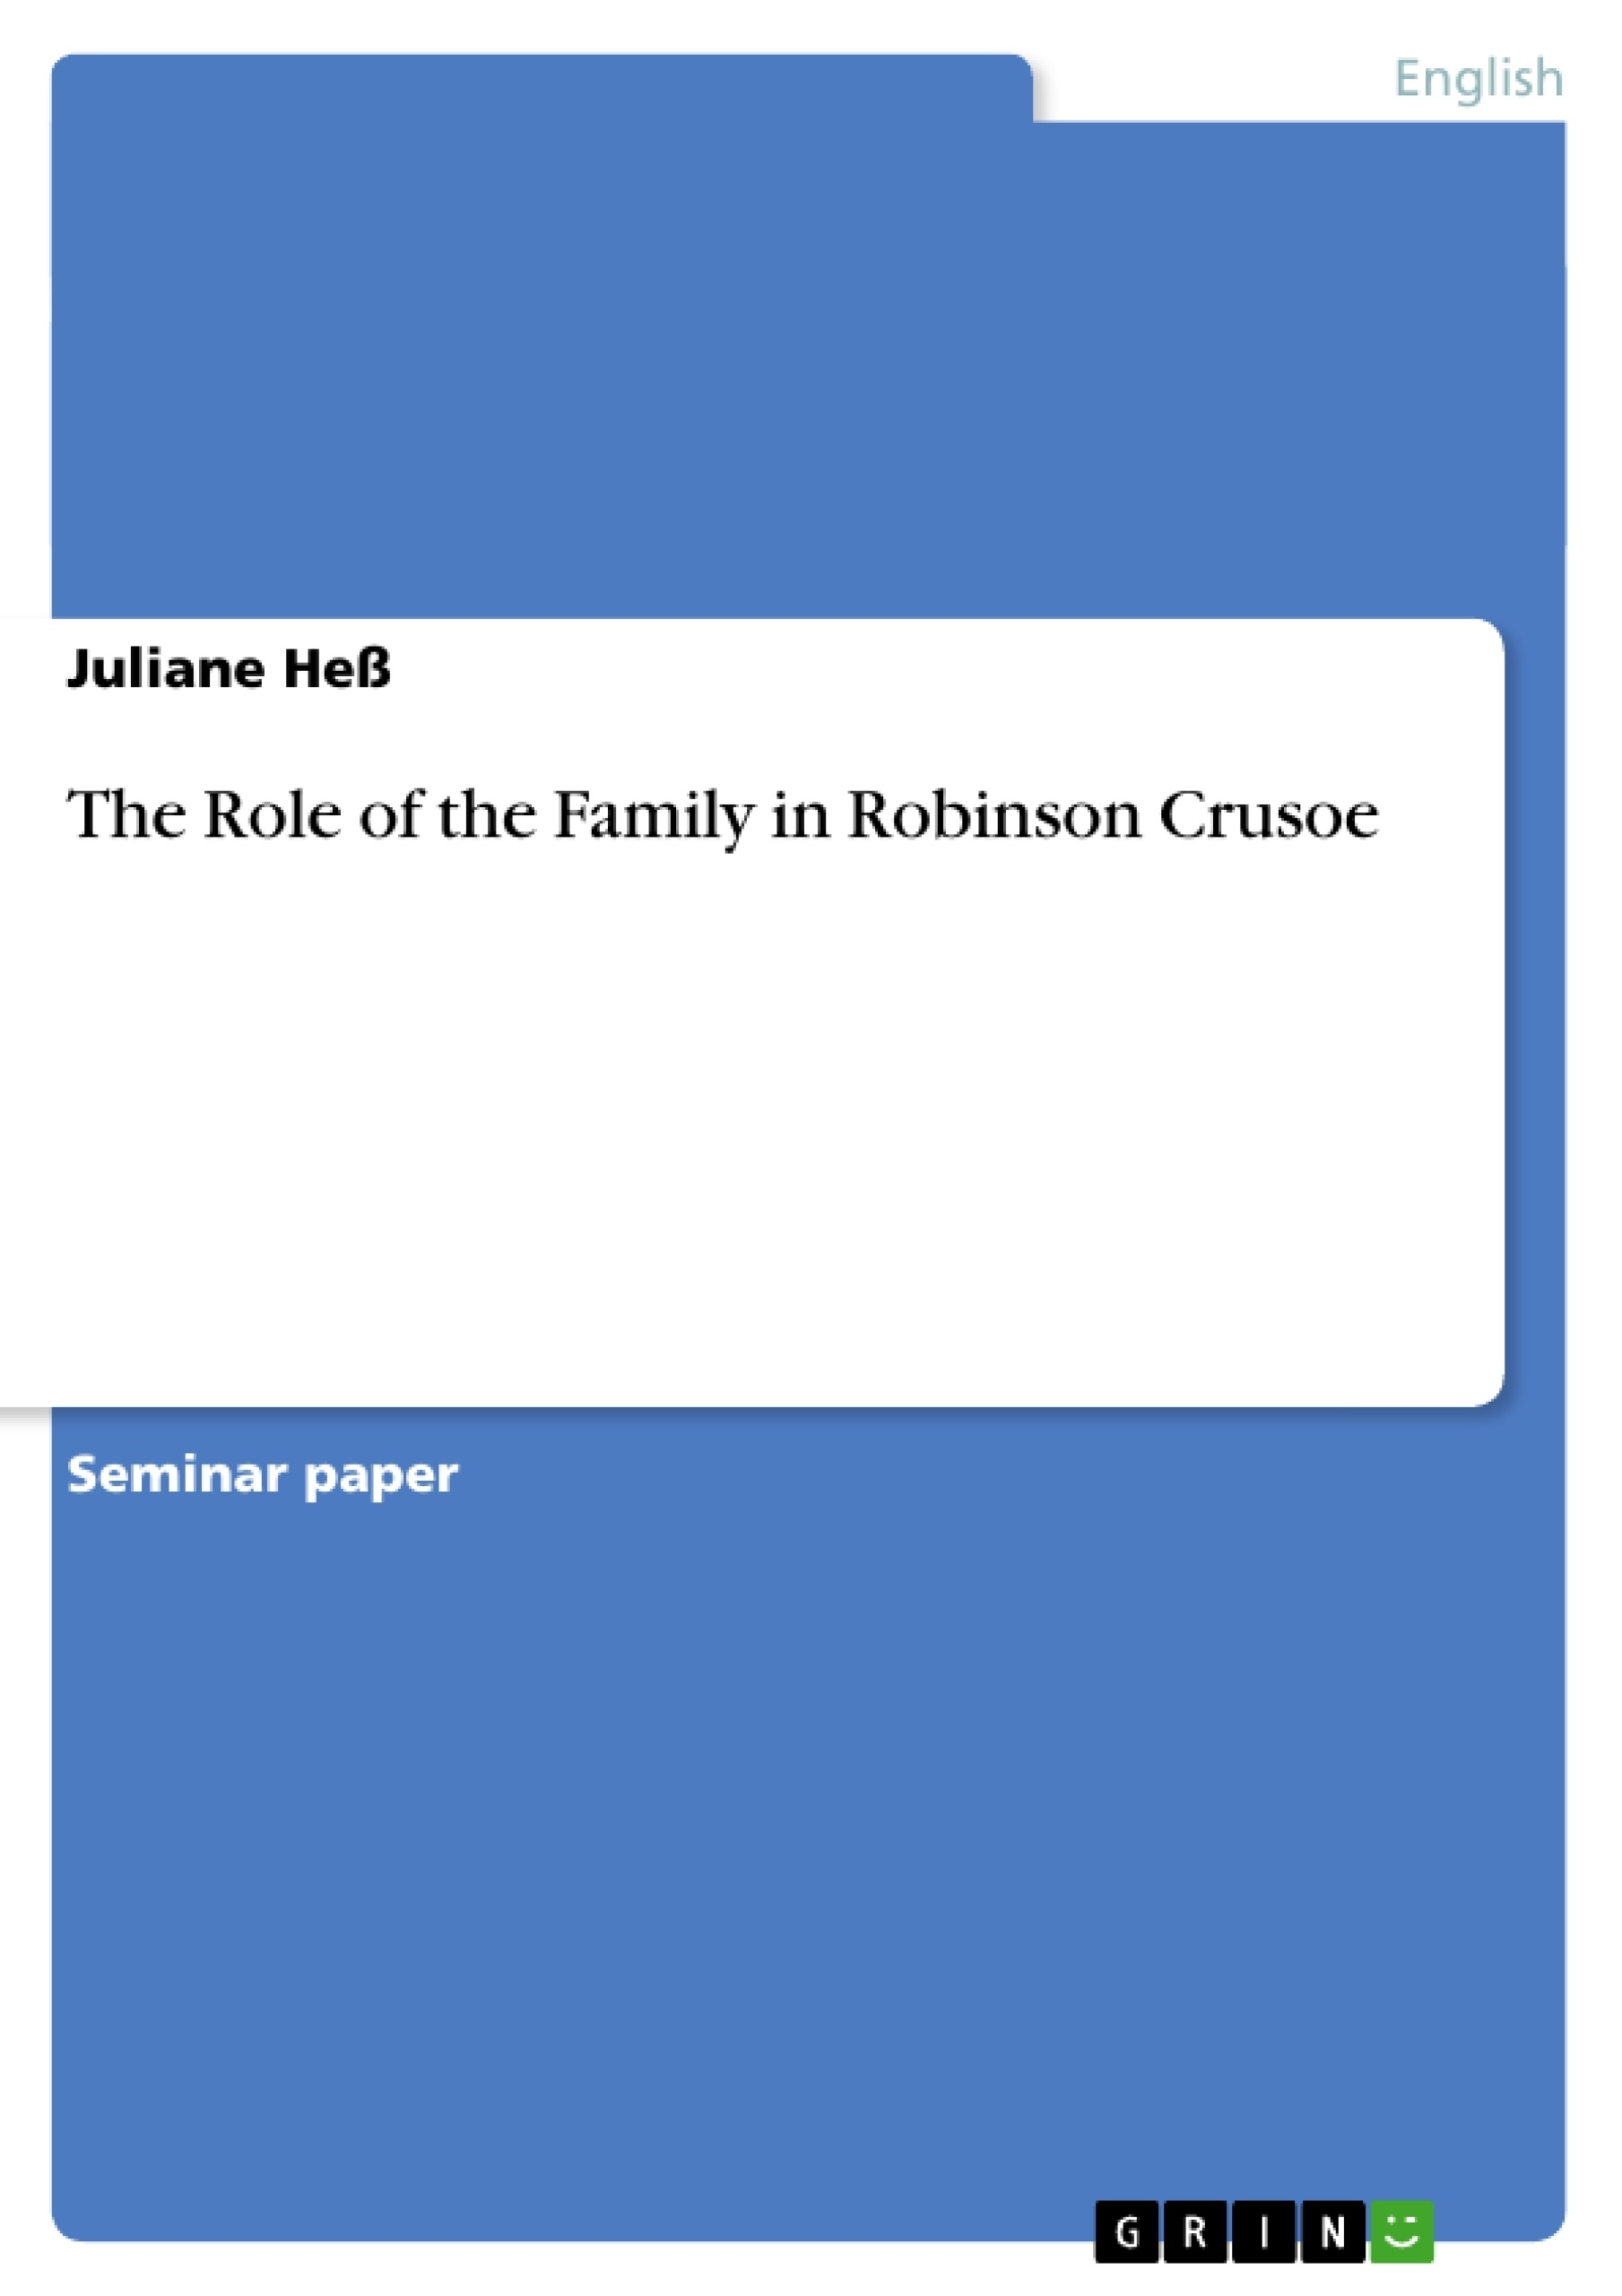 the role of the family in robinson crusoe publish your master s upload your own papers earn money and win an iphone 7